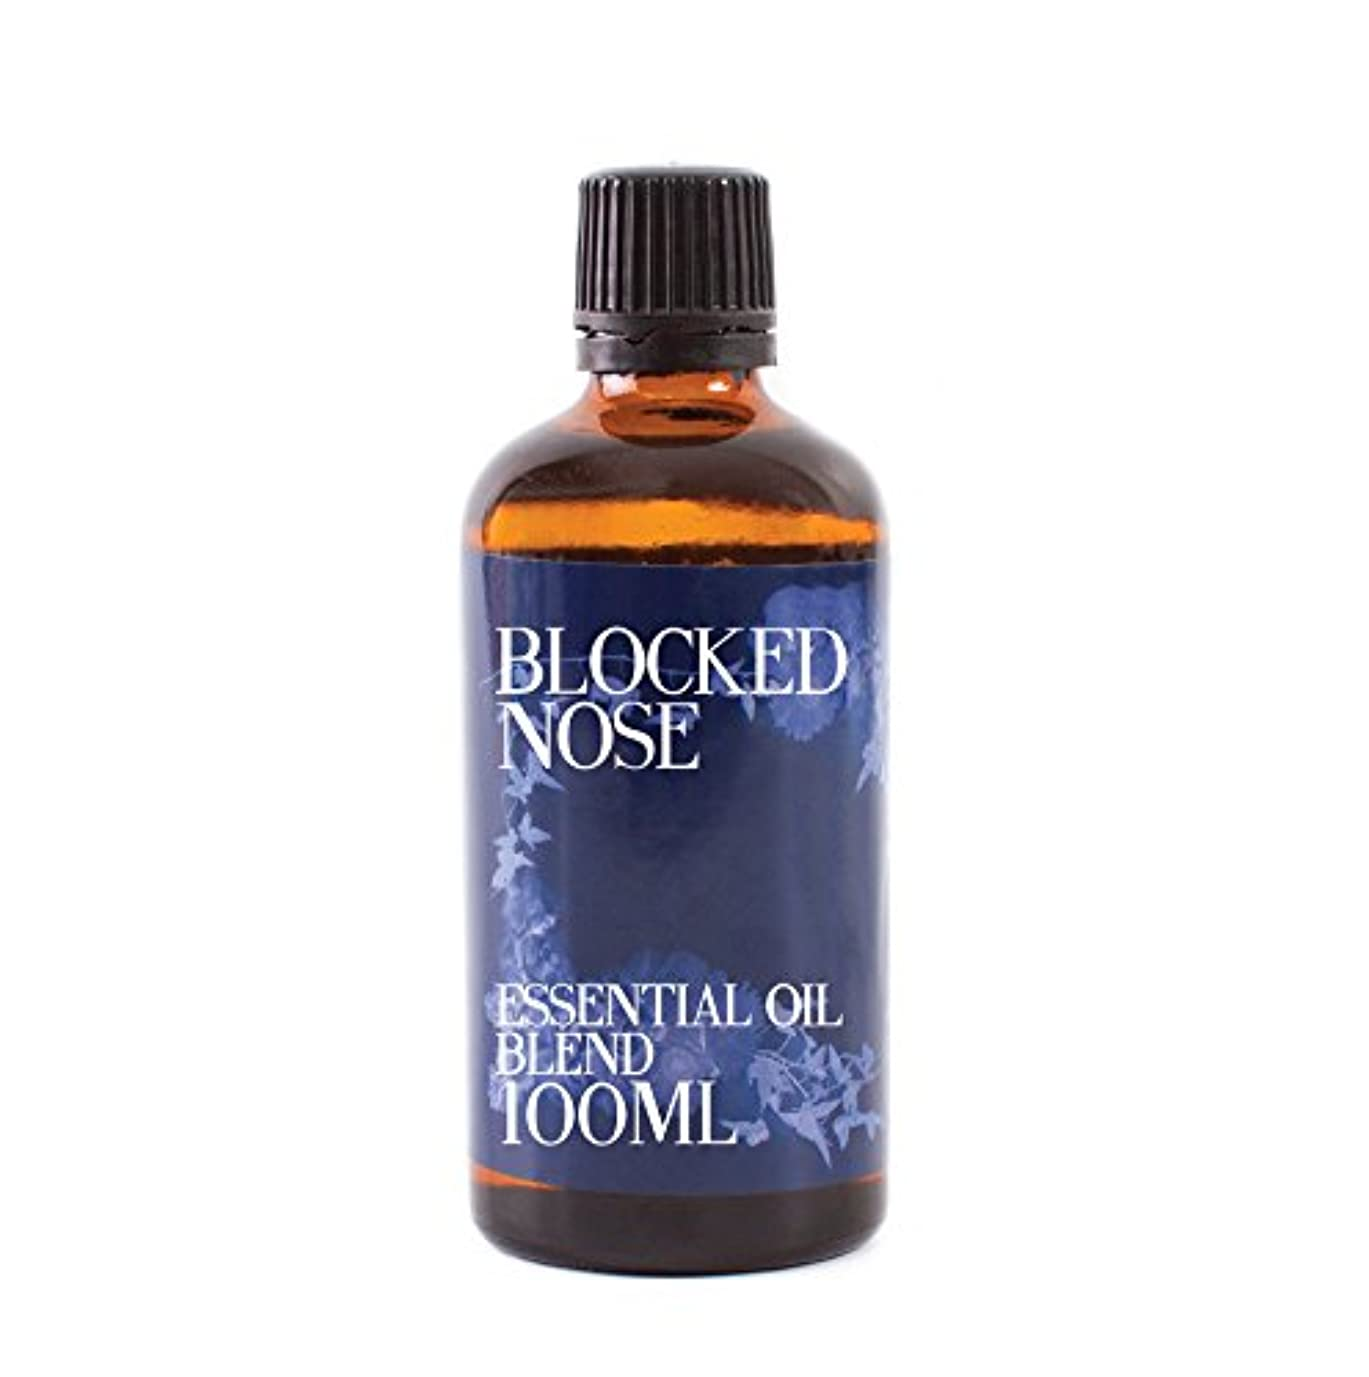 スピーチ計算可能呼びかけるMystic Moments | Blocked Nose Essential Oil Blend - 100ml - 100% Pure